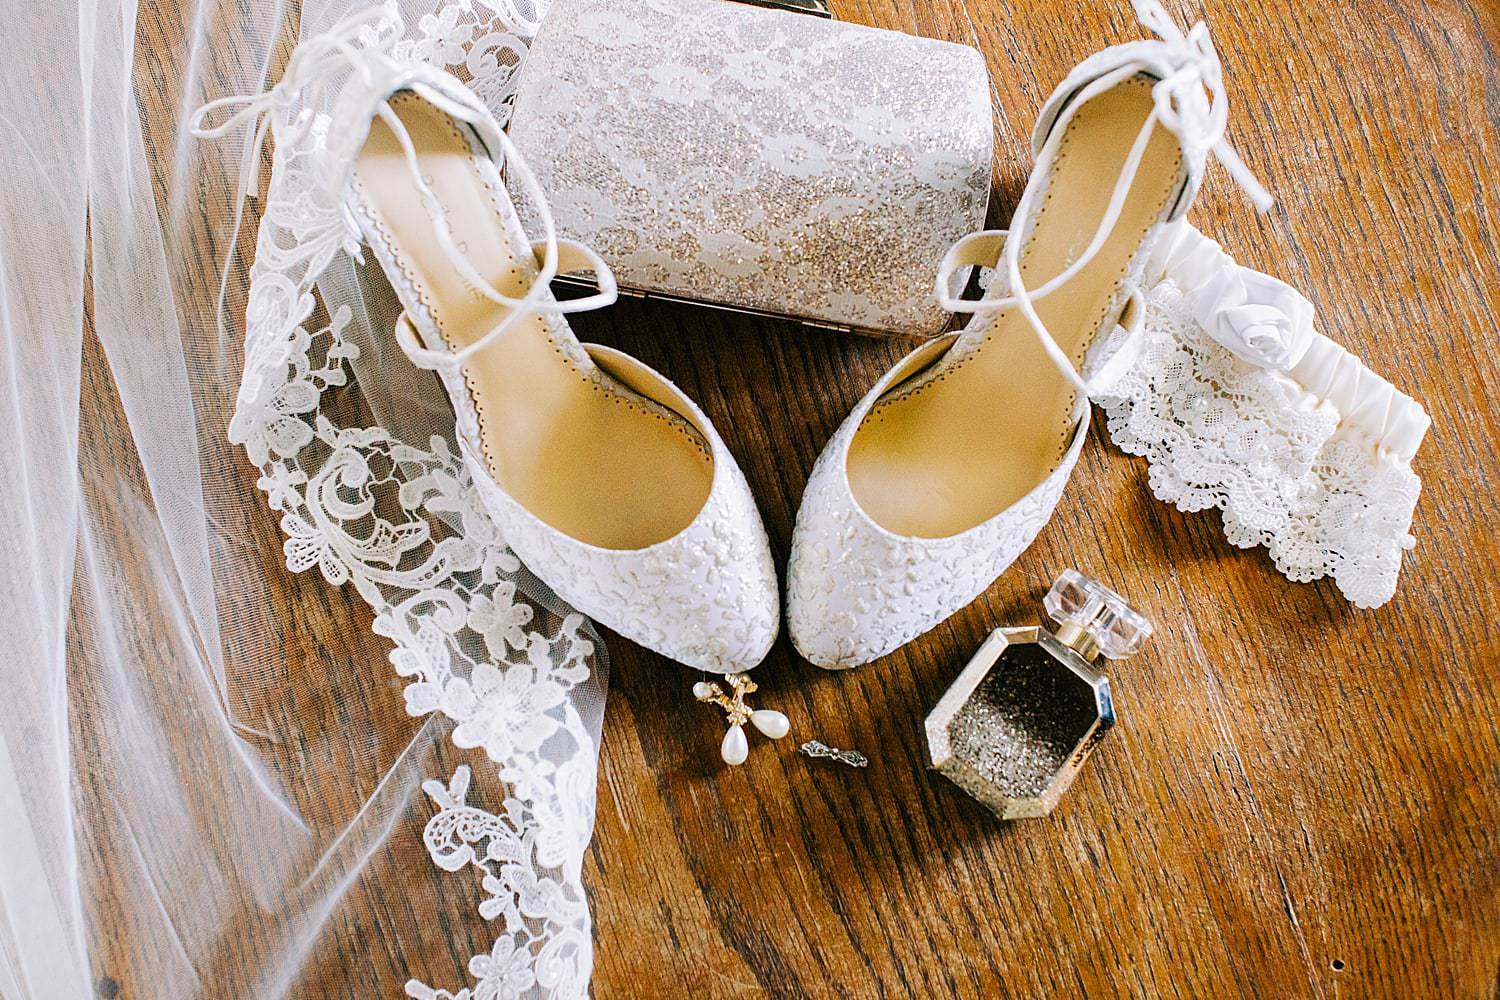 tips-for-your-wedding-wedding-guide-wedding-day-tips-getting-ready